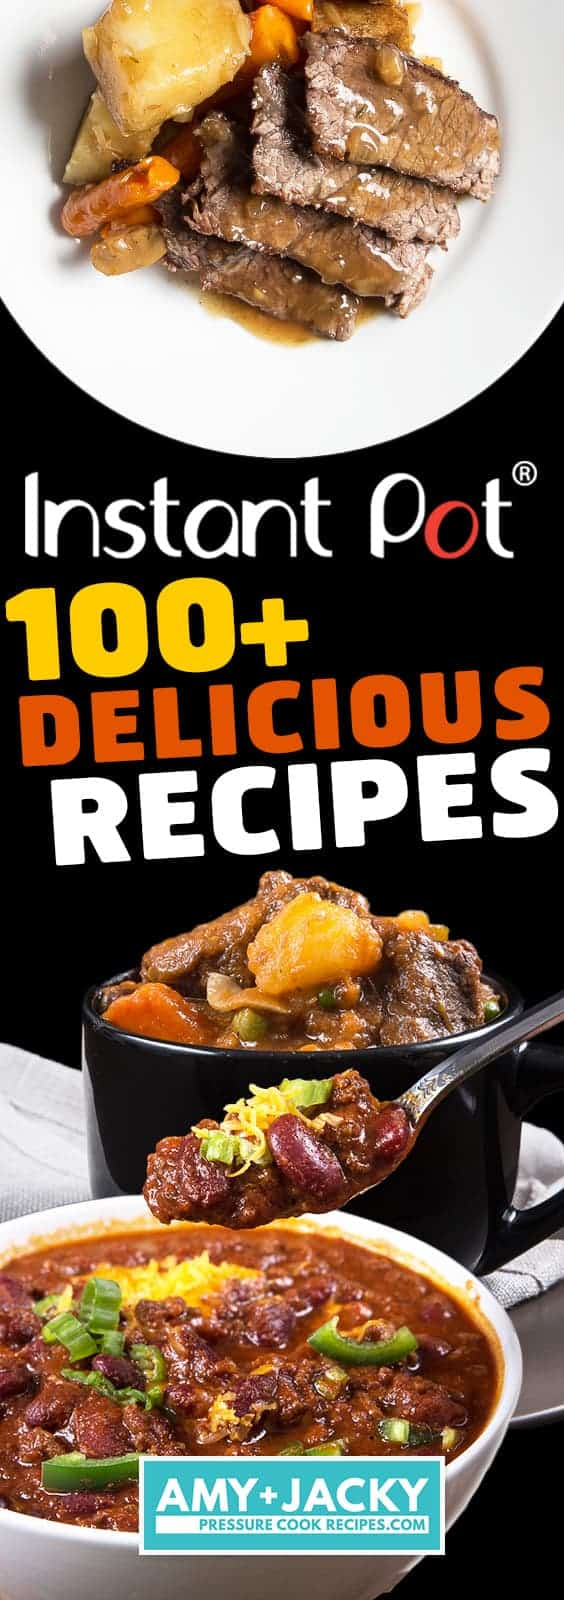 Instant Pot Recipes and Pressure Cooker Recipes: Easy Instant Pot Recipes, Healthy Family Recipes, Instant Pot Chicken, Instant Pot Beef, Instant Pot Pork, Instant Pot Desserts, Instant Pot Soup, and more. #instantpot #pressurecooker #recipe #food #easy #healthyrecipes